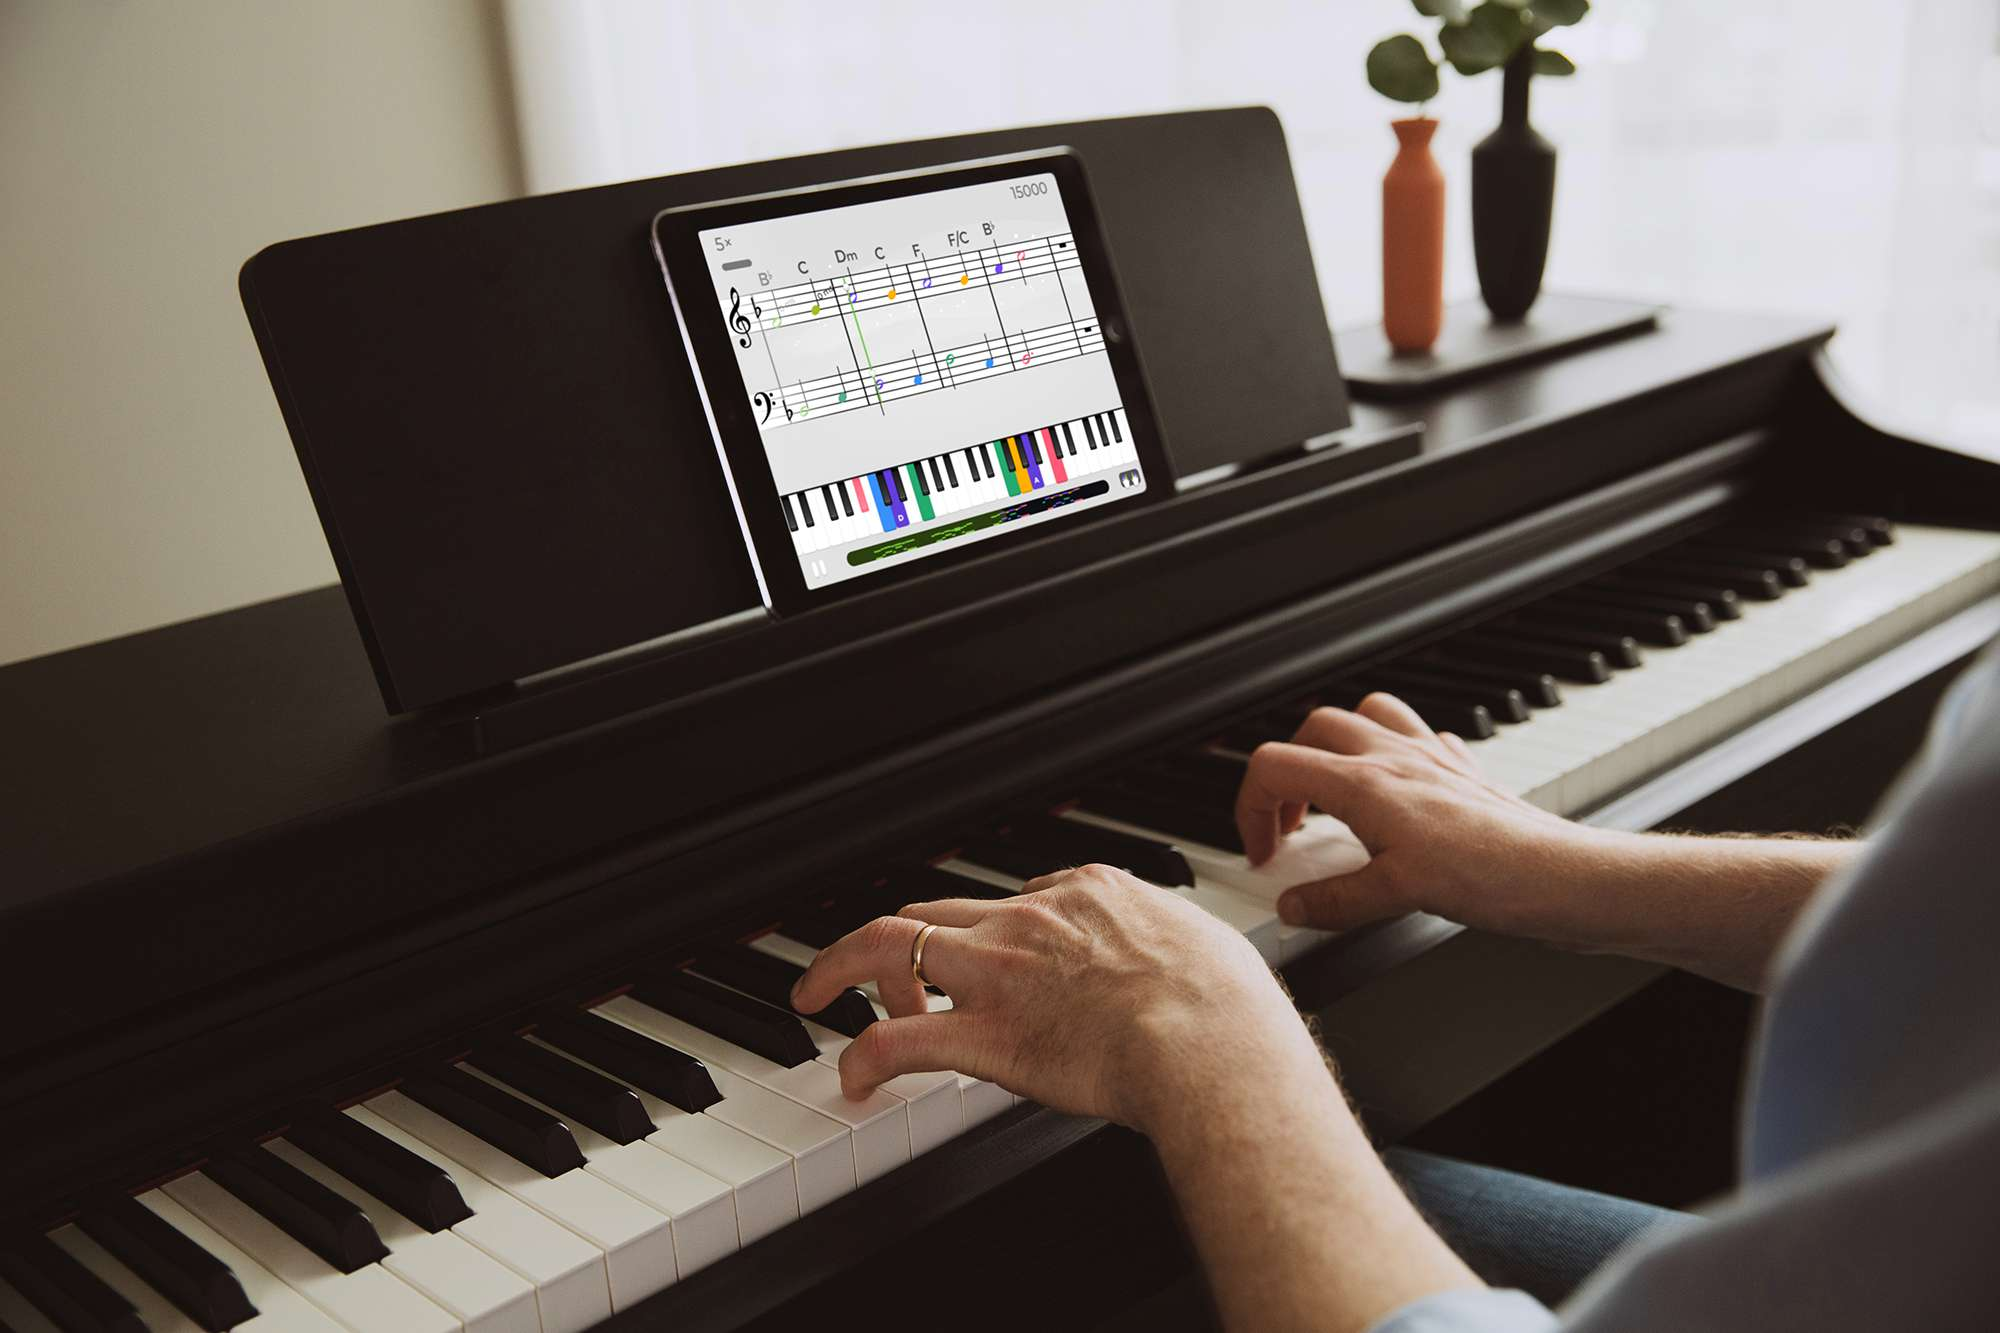 A person learns piano with Yousician on iPad